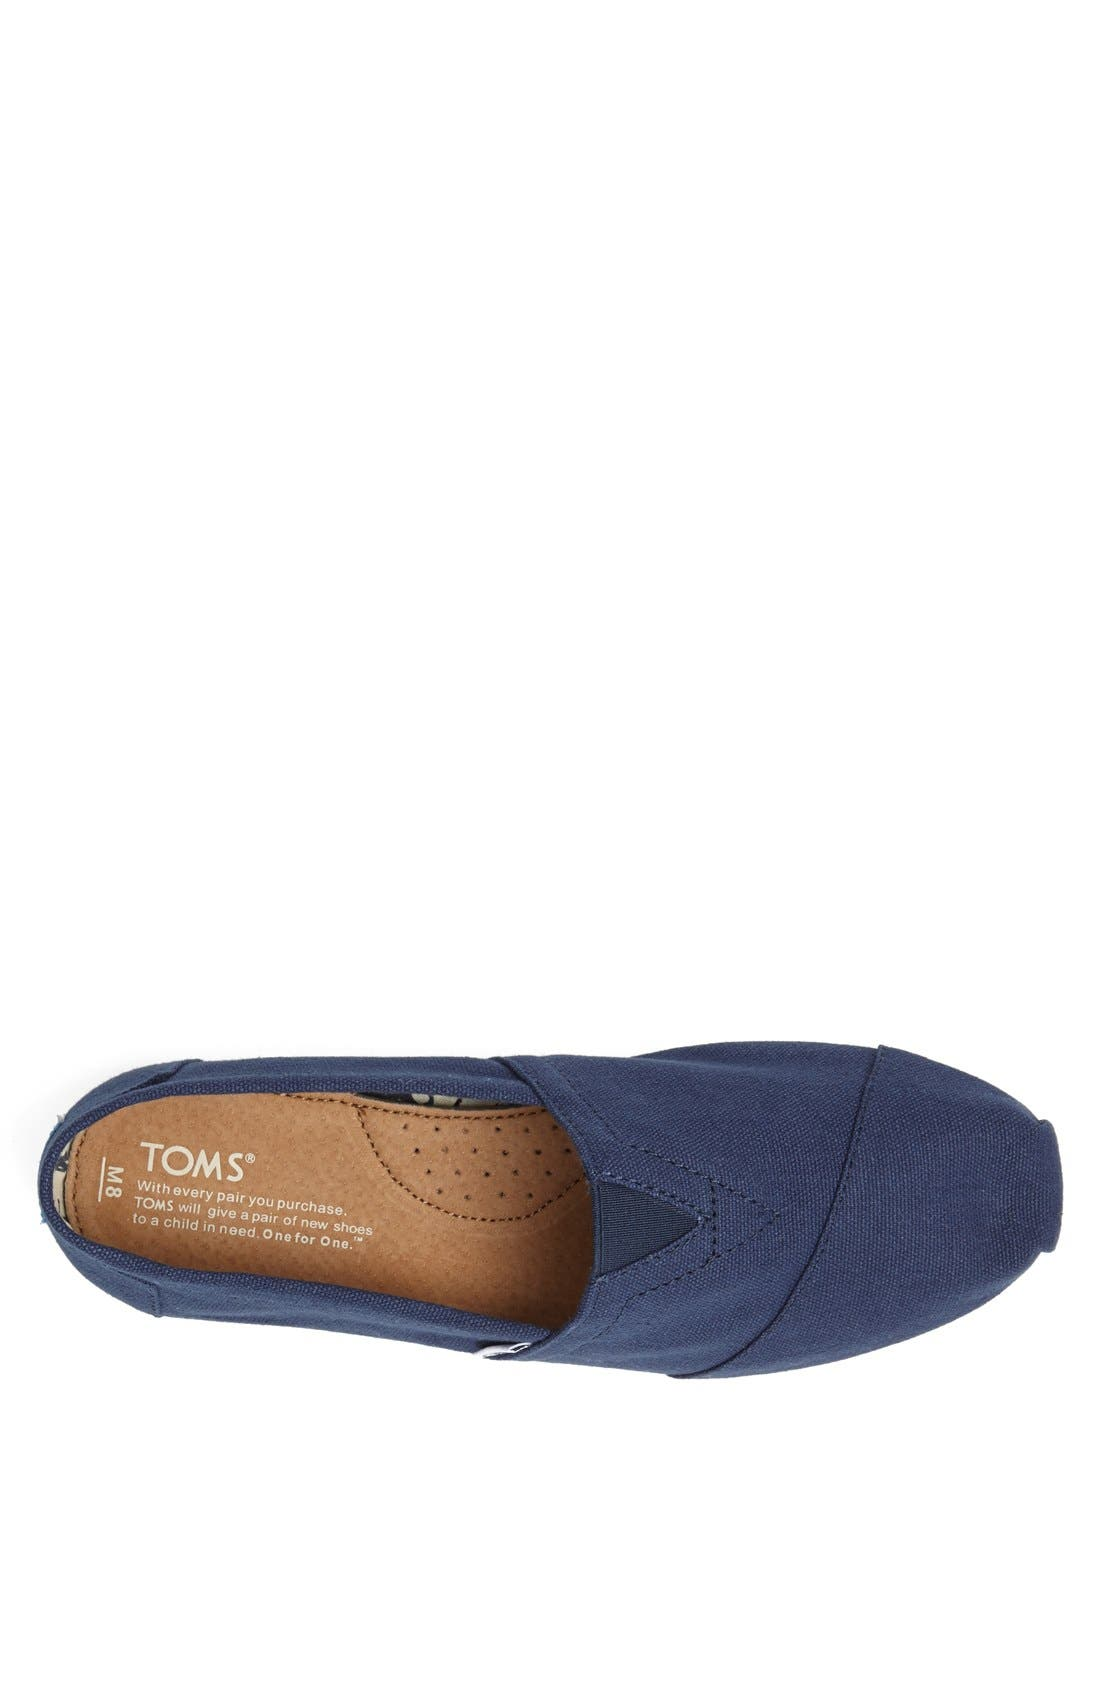 Alternate Image 3  - TOMS 'Classic' Canvas Slip-On   (Men)